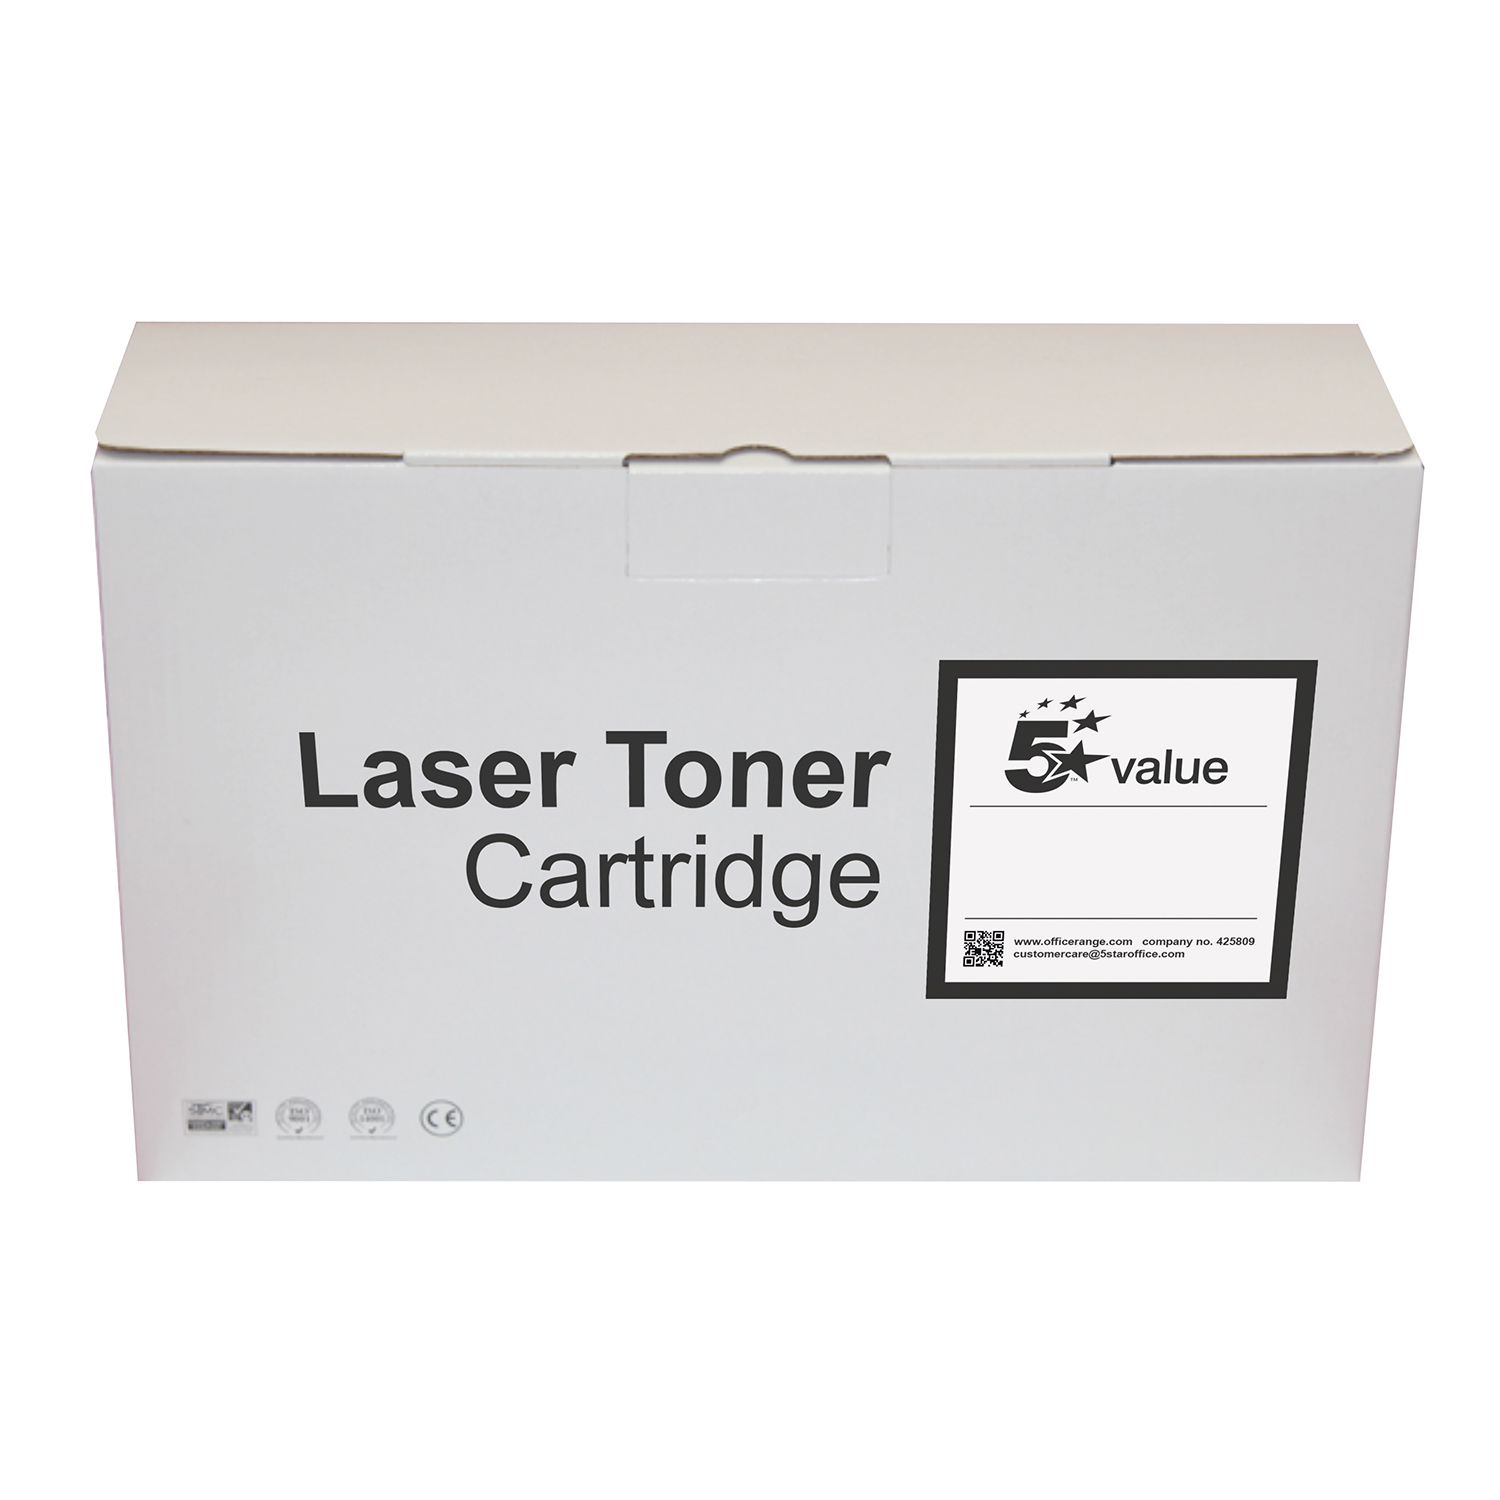 5 Star Value Remanufactured Laser Toner Cartridge Page Life 1800pp Cyan HP No. 131A CF211A Alternative